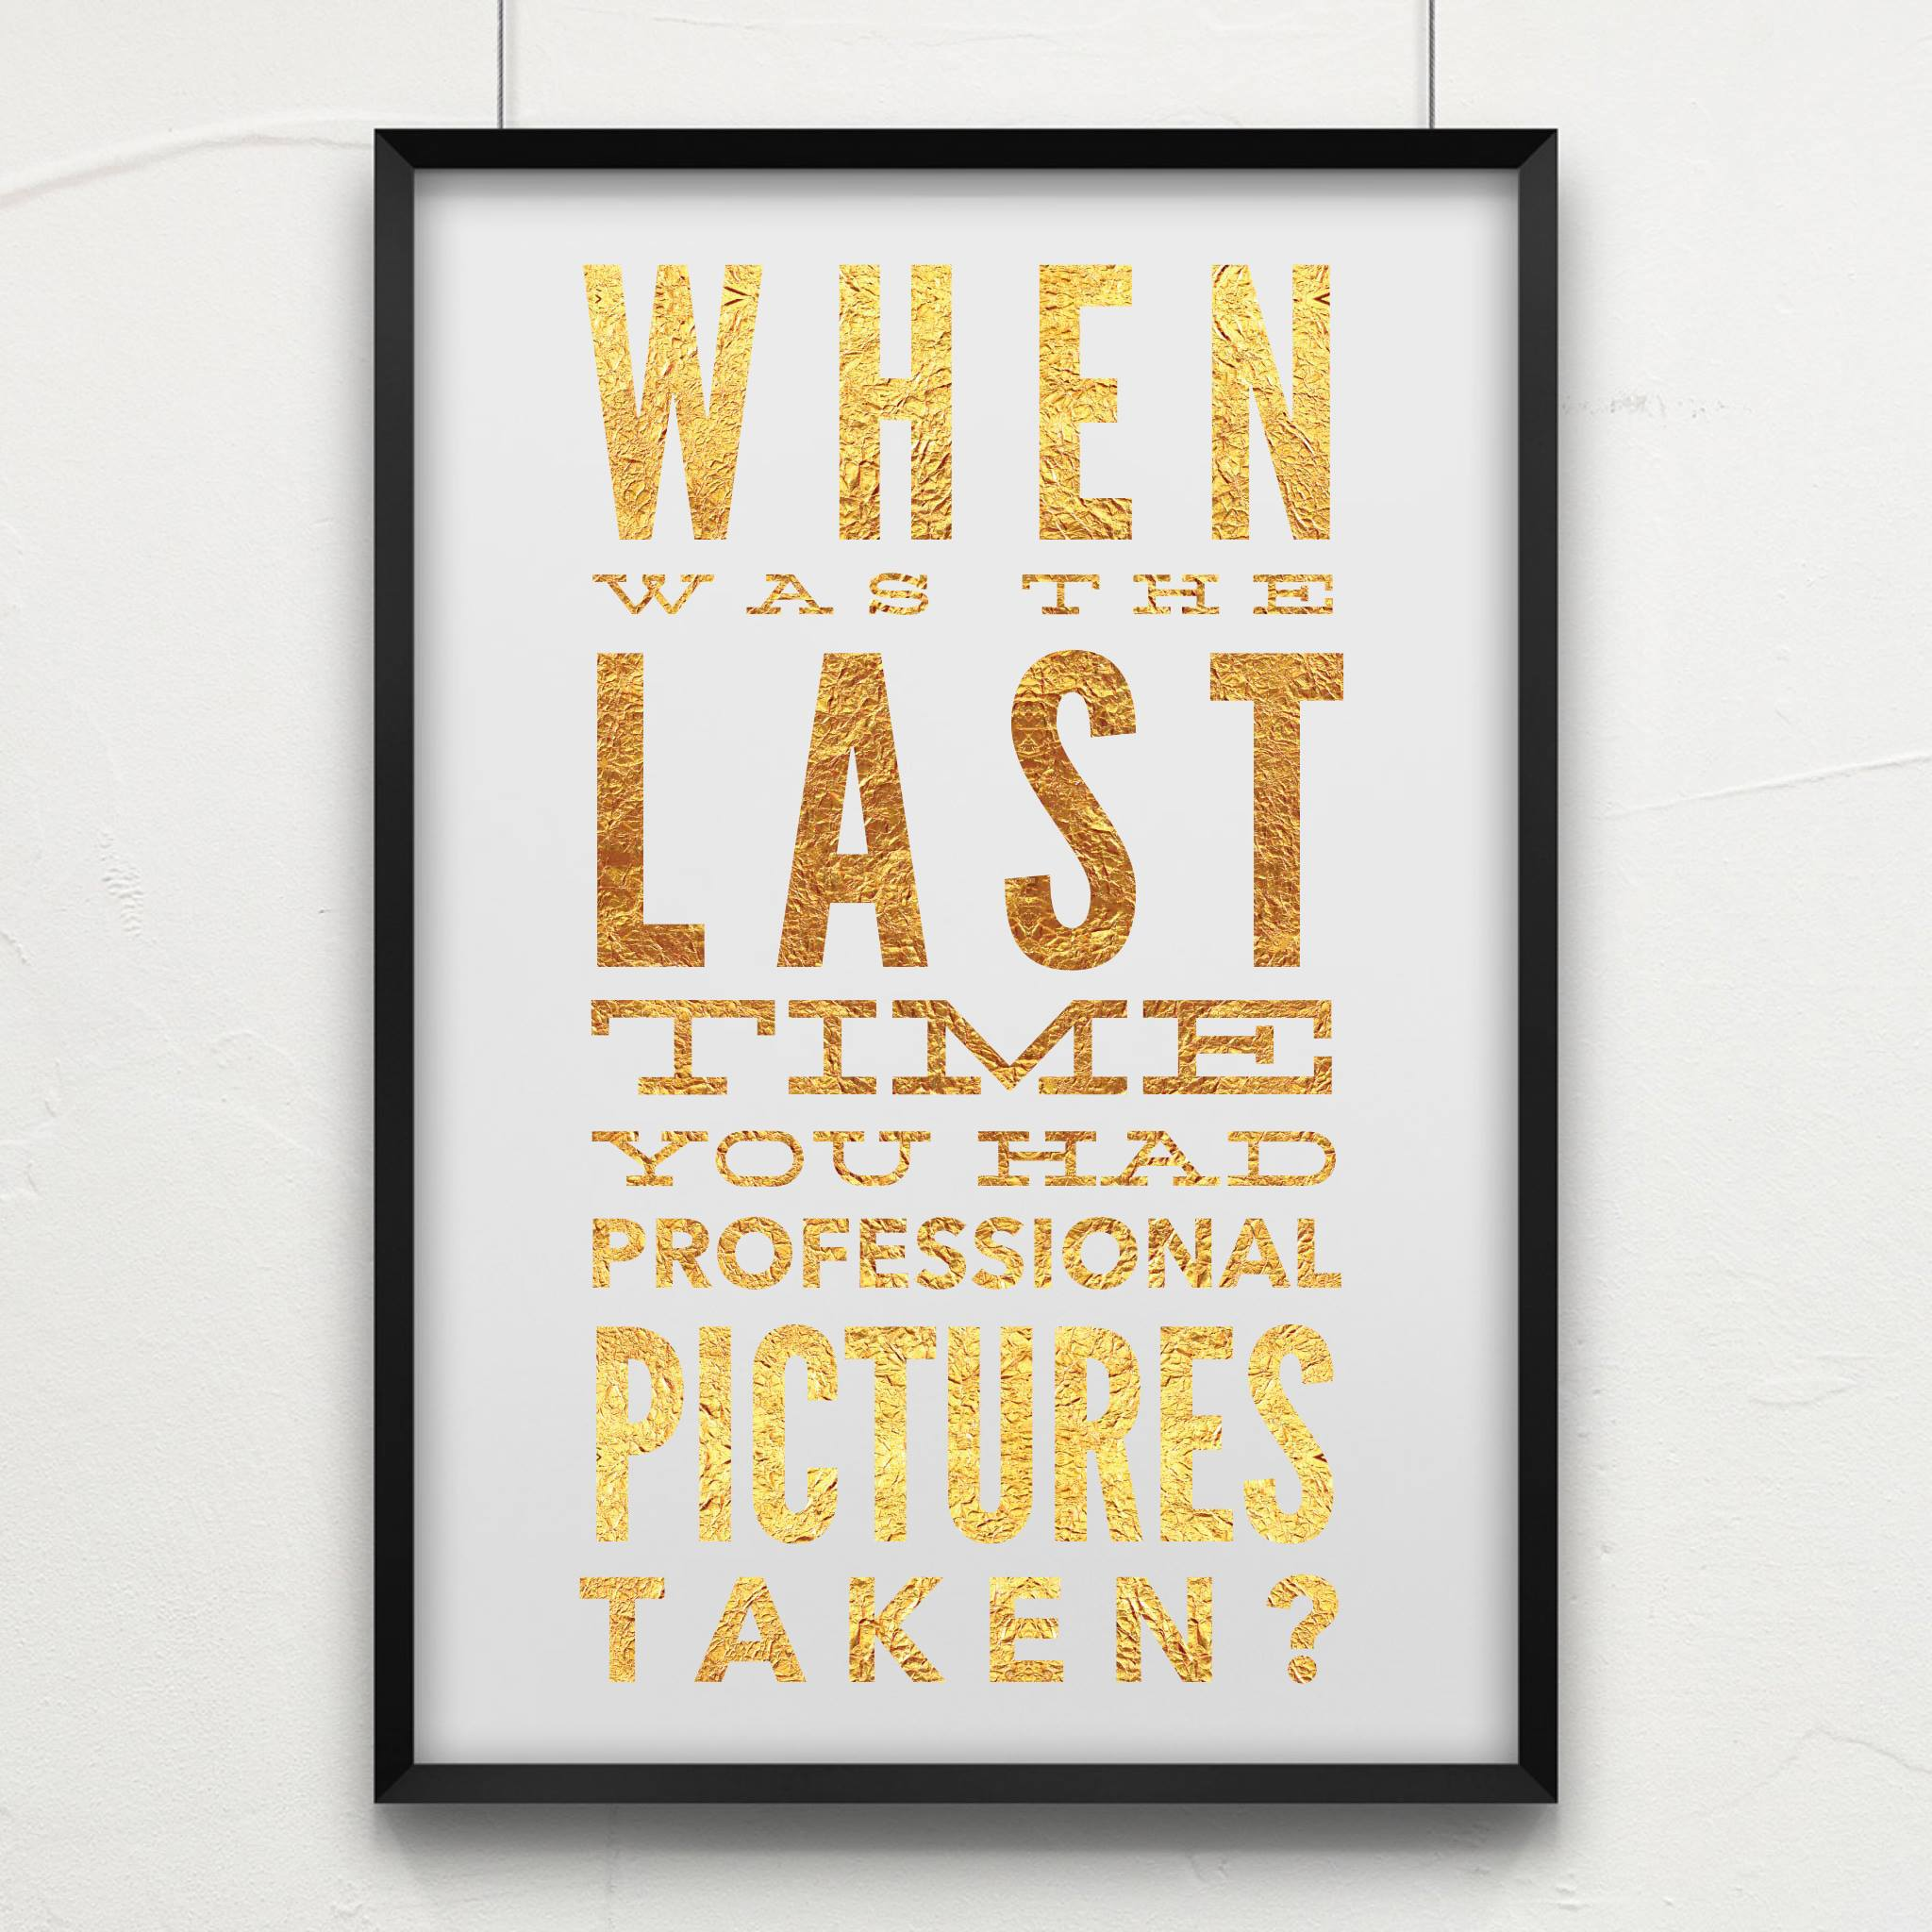 Why you should have professional photographs taken